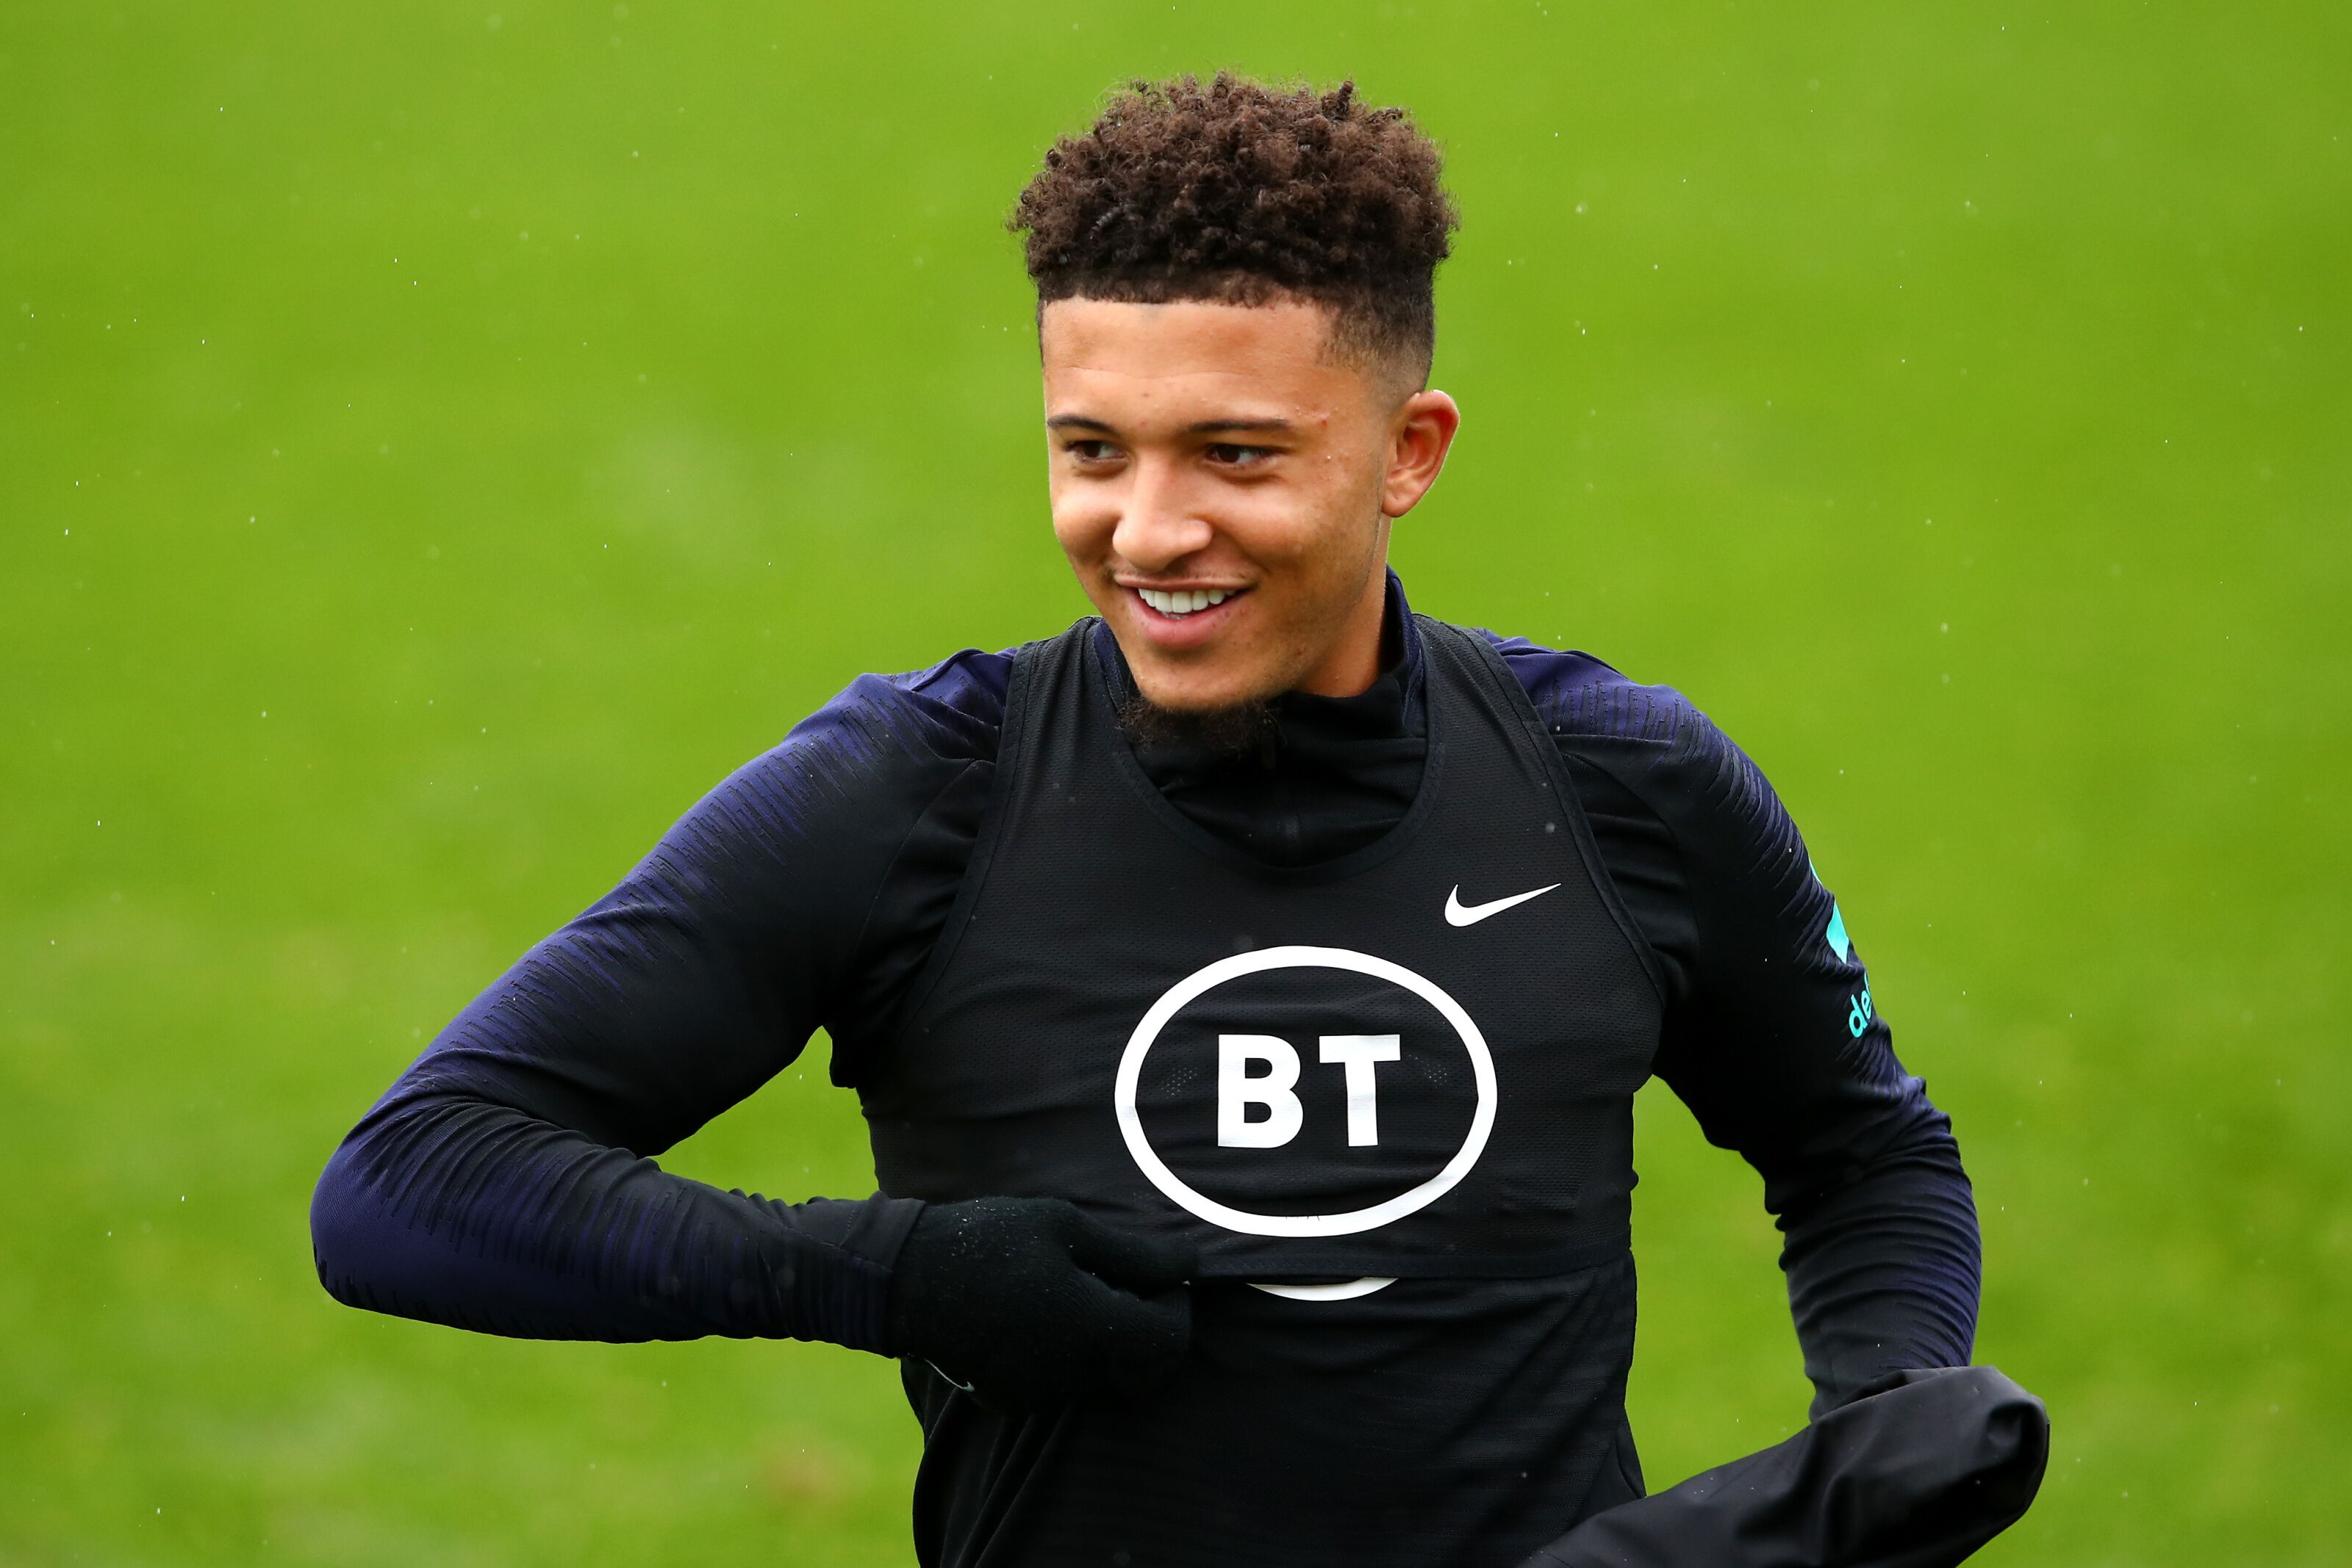 Manchester United: A near deal for Jadon Sancho was wide of the mark